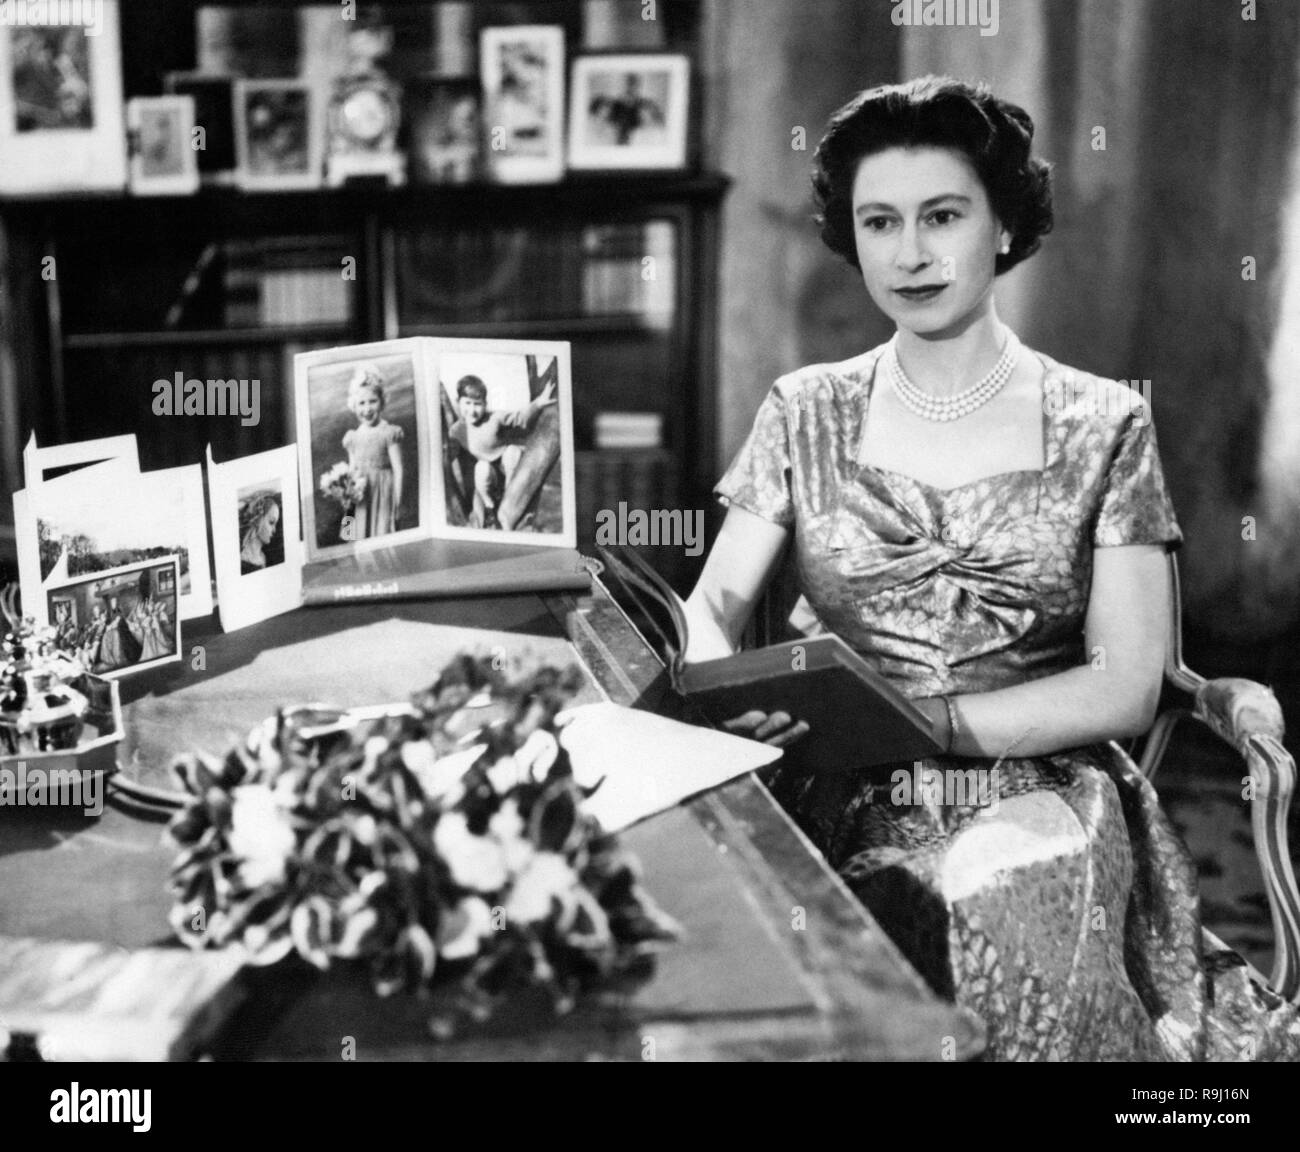 File photo dated 25/12/17 of Queen Elizabeth II in the Long Library at Sandringham shortly after making her Christmas Day broadcast to the nation. The monarch made her first Christmas broadcast live on the radio in 1952 Ð the year of her accession Ð and the annual message was first shown on TV in 1957. - Stock Image